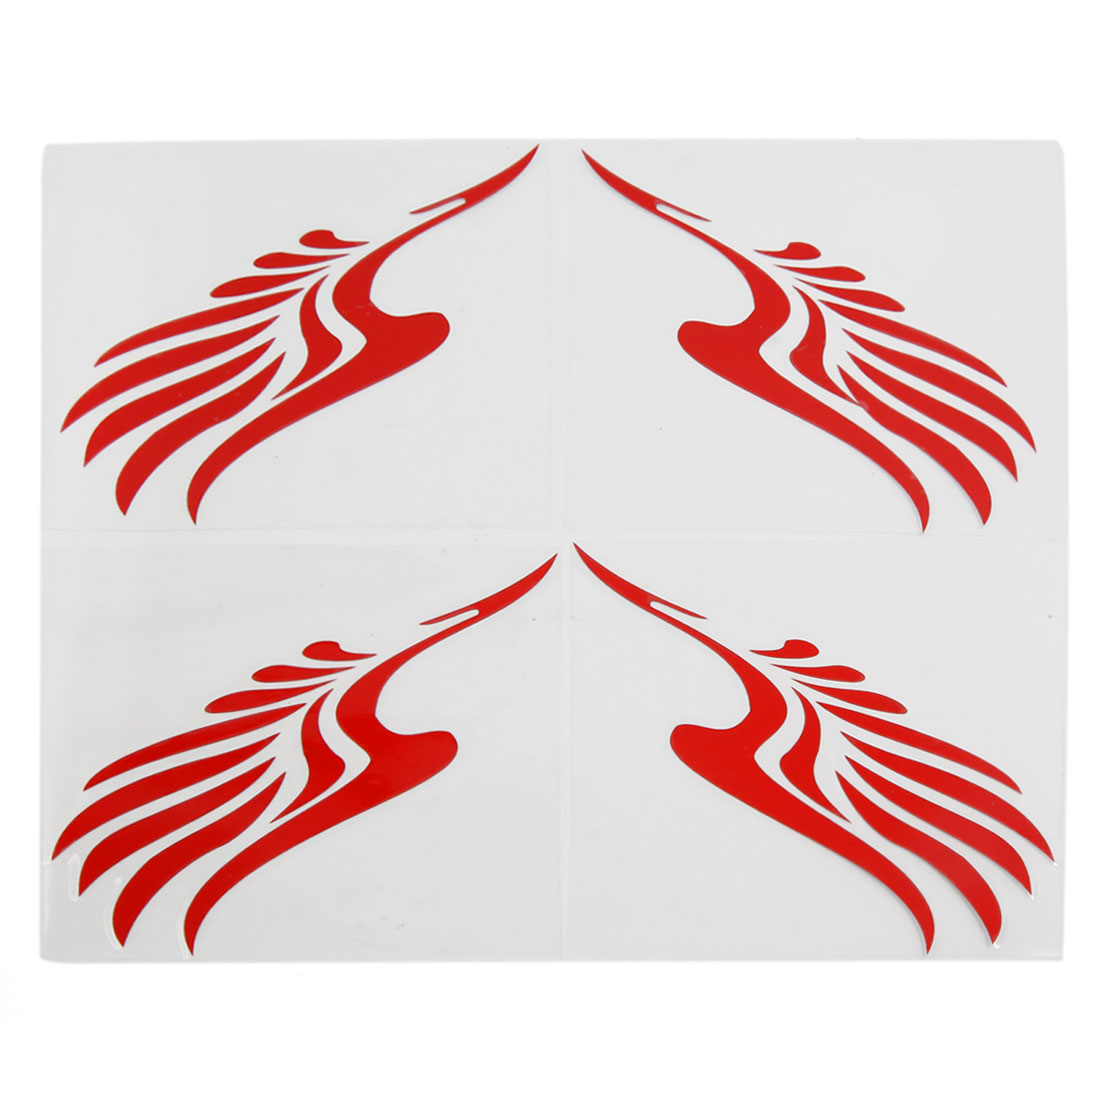 4pcs Red Vinyl Car Side Rear View Mirrors Wing Printed Stickers Decal 11.5cm x 11.5cm